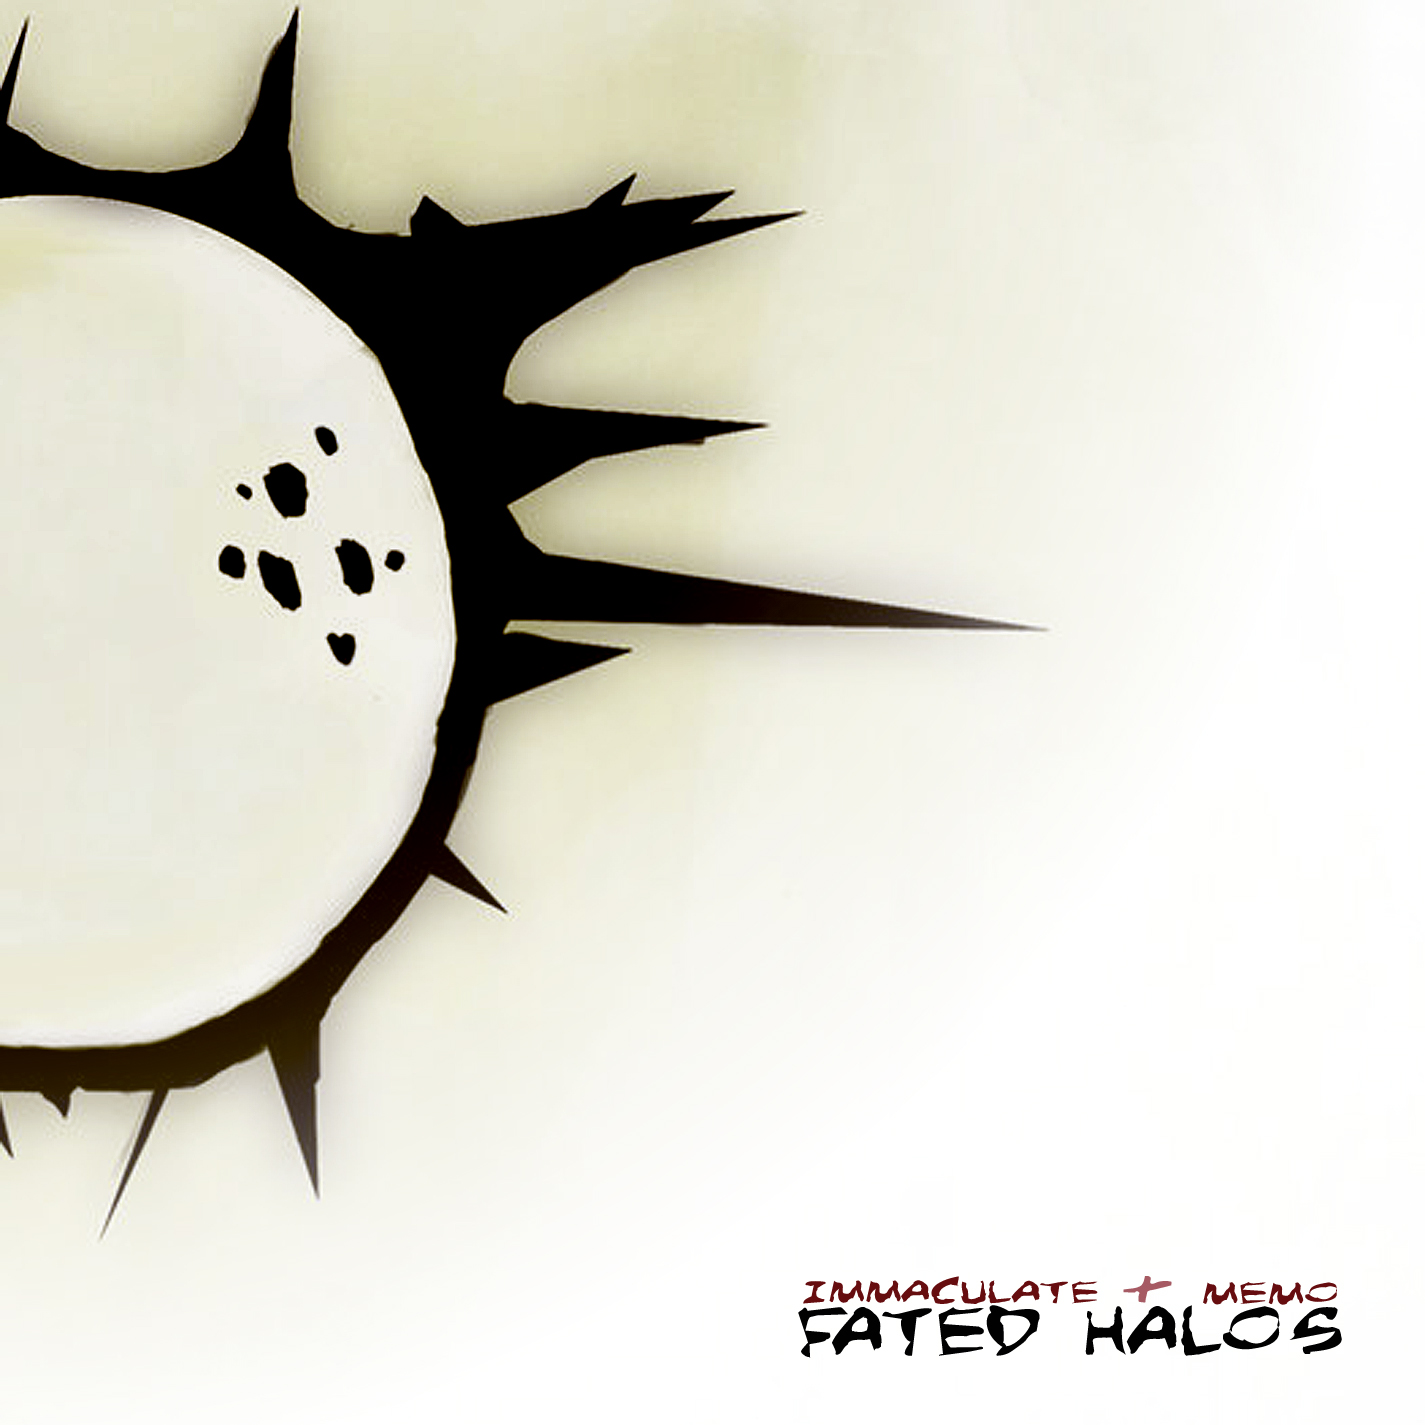 Fated Halos inverted2.jpg